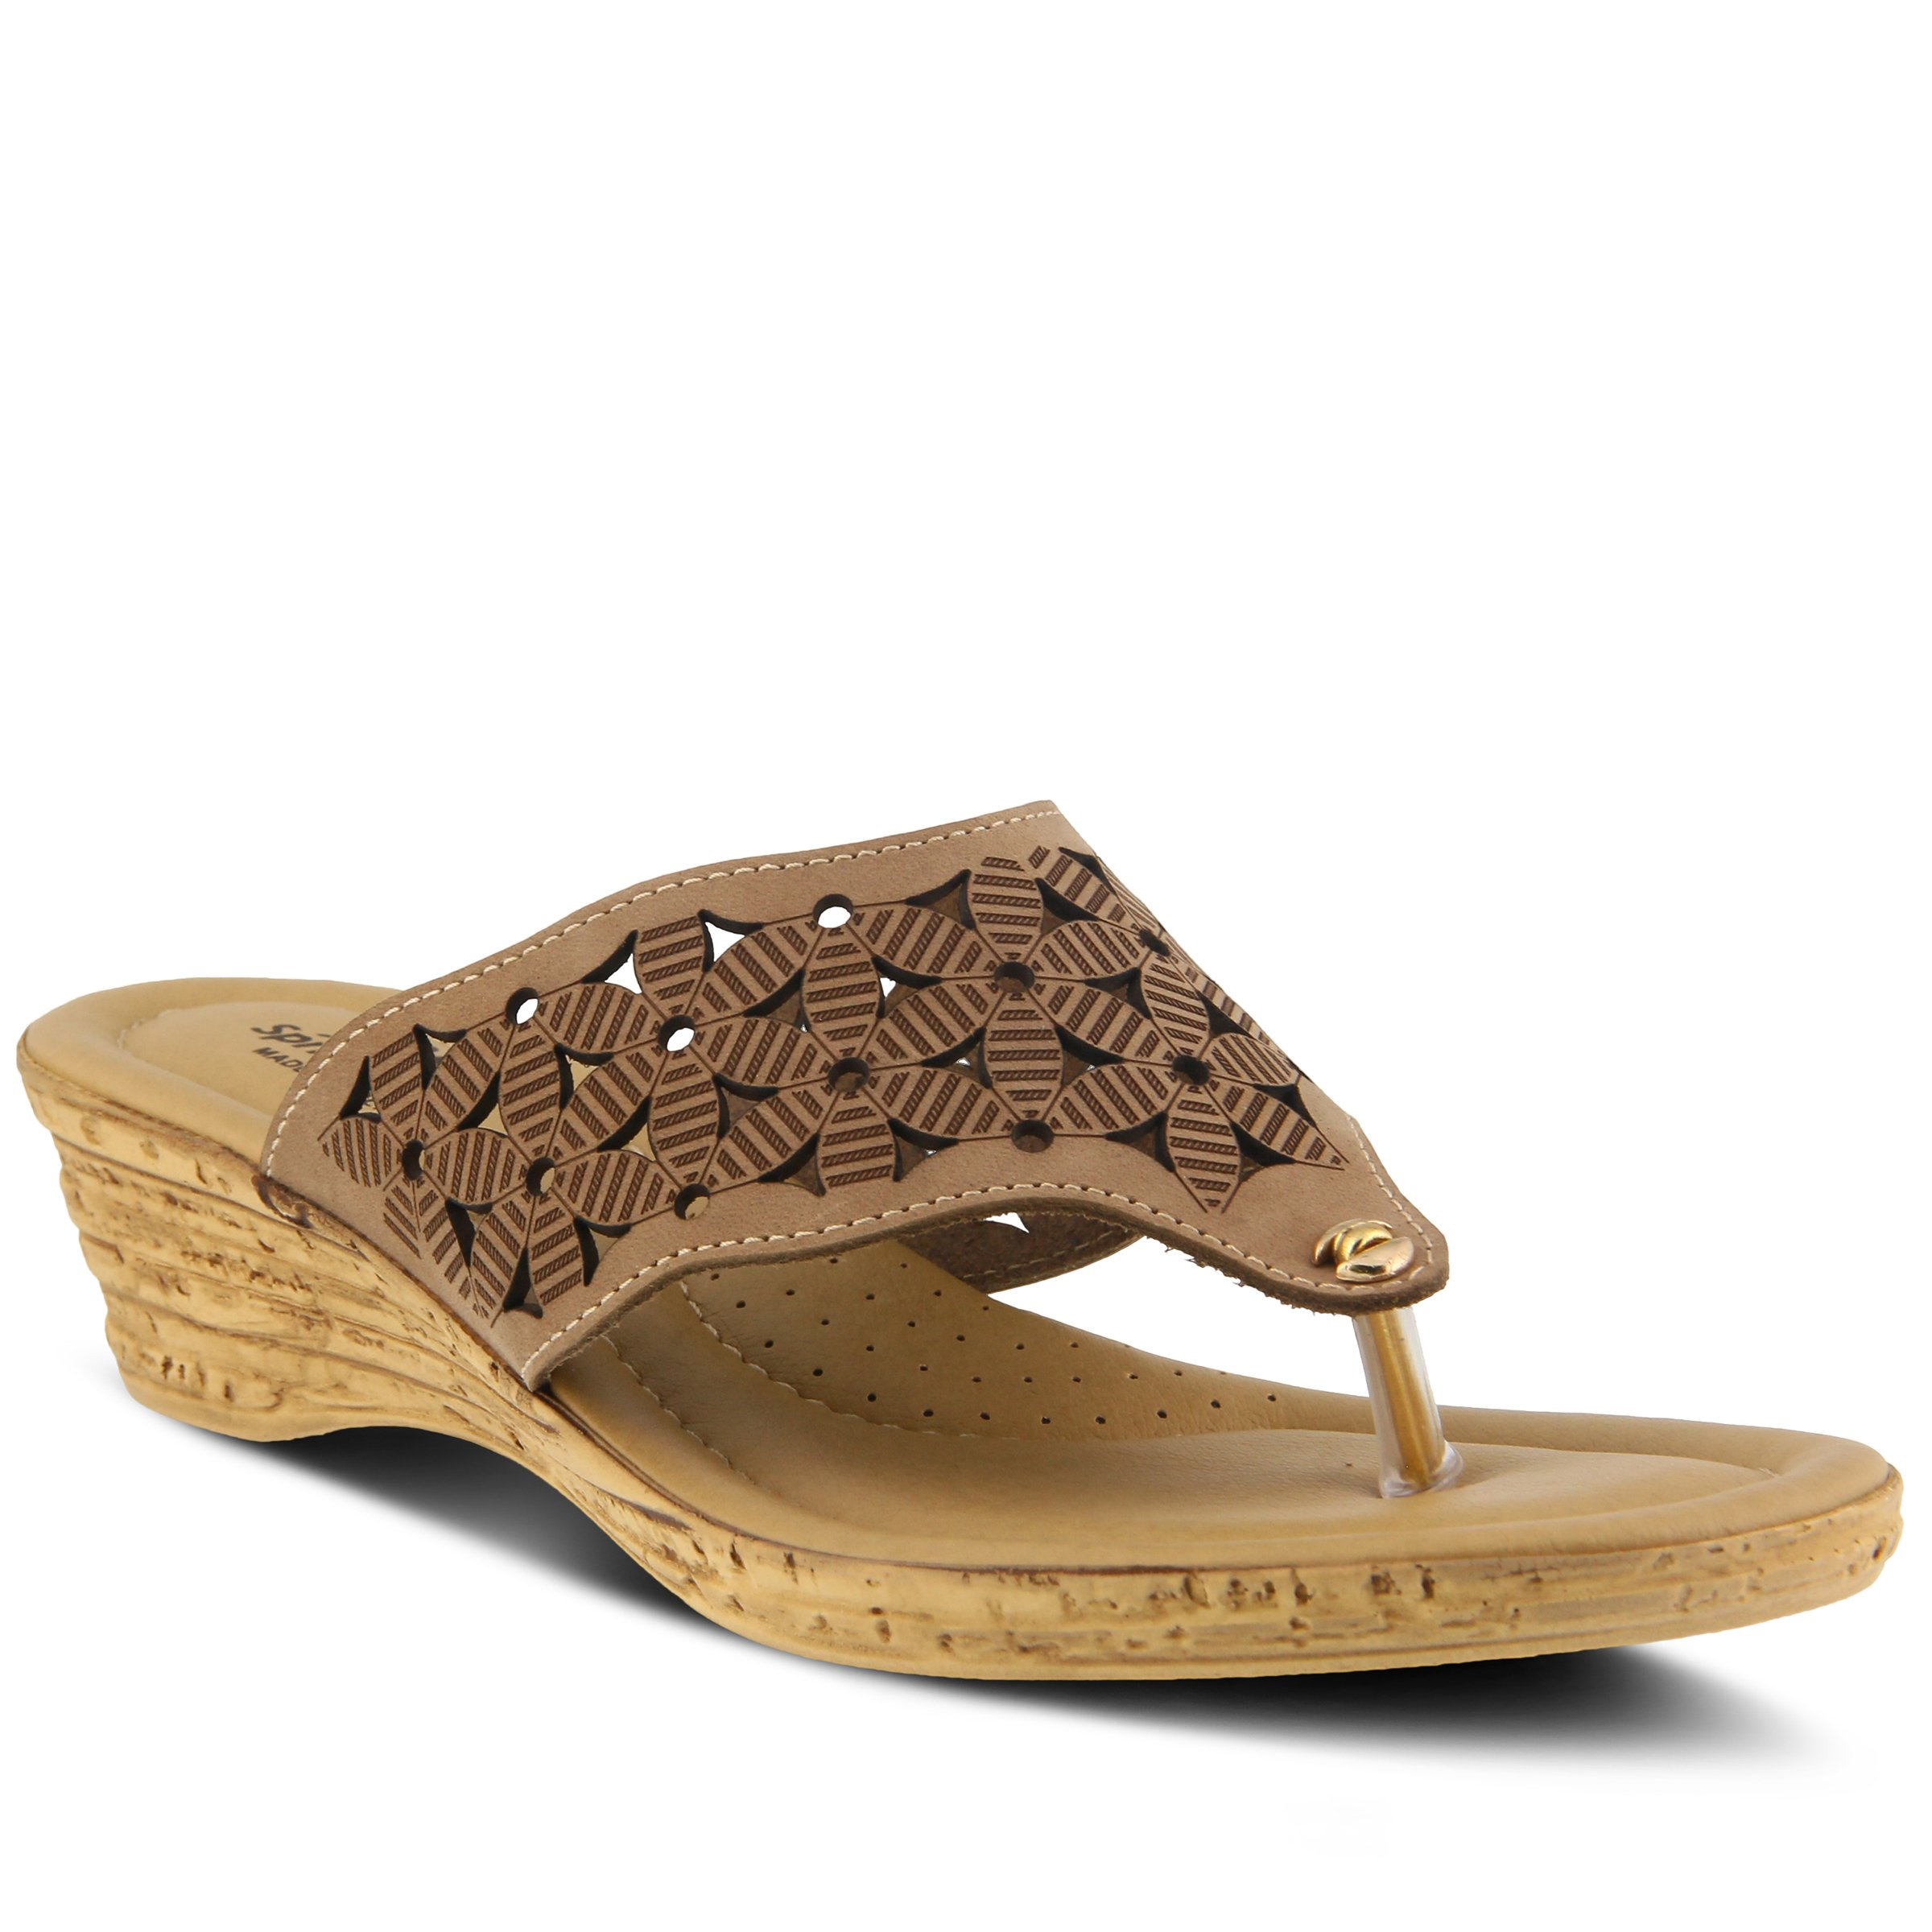 Spring Step Women's Style Tiffany Beige EURO Size 38 Leather Sandal